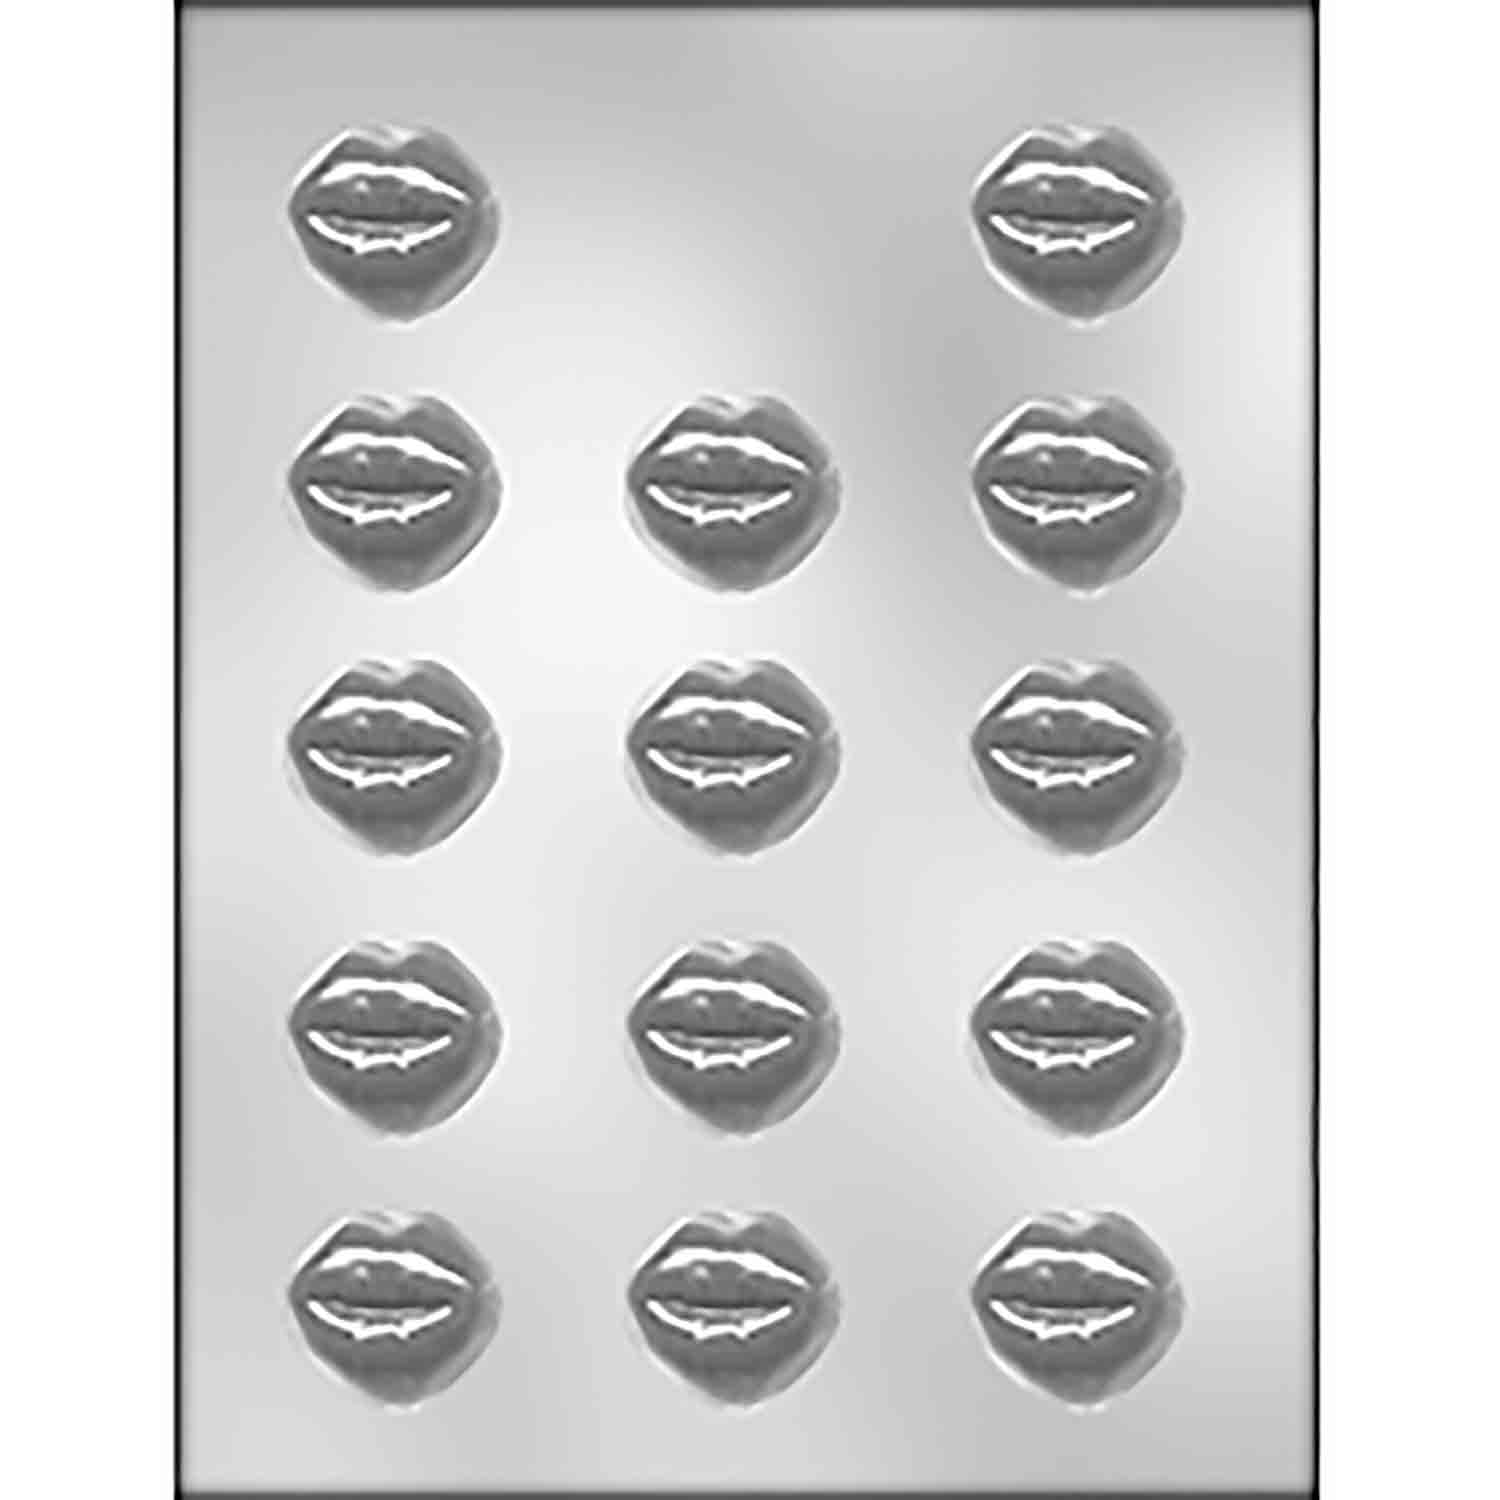 Smoochettes Kissing Lips Chocolate Candy Mold